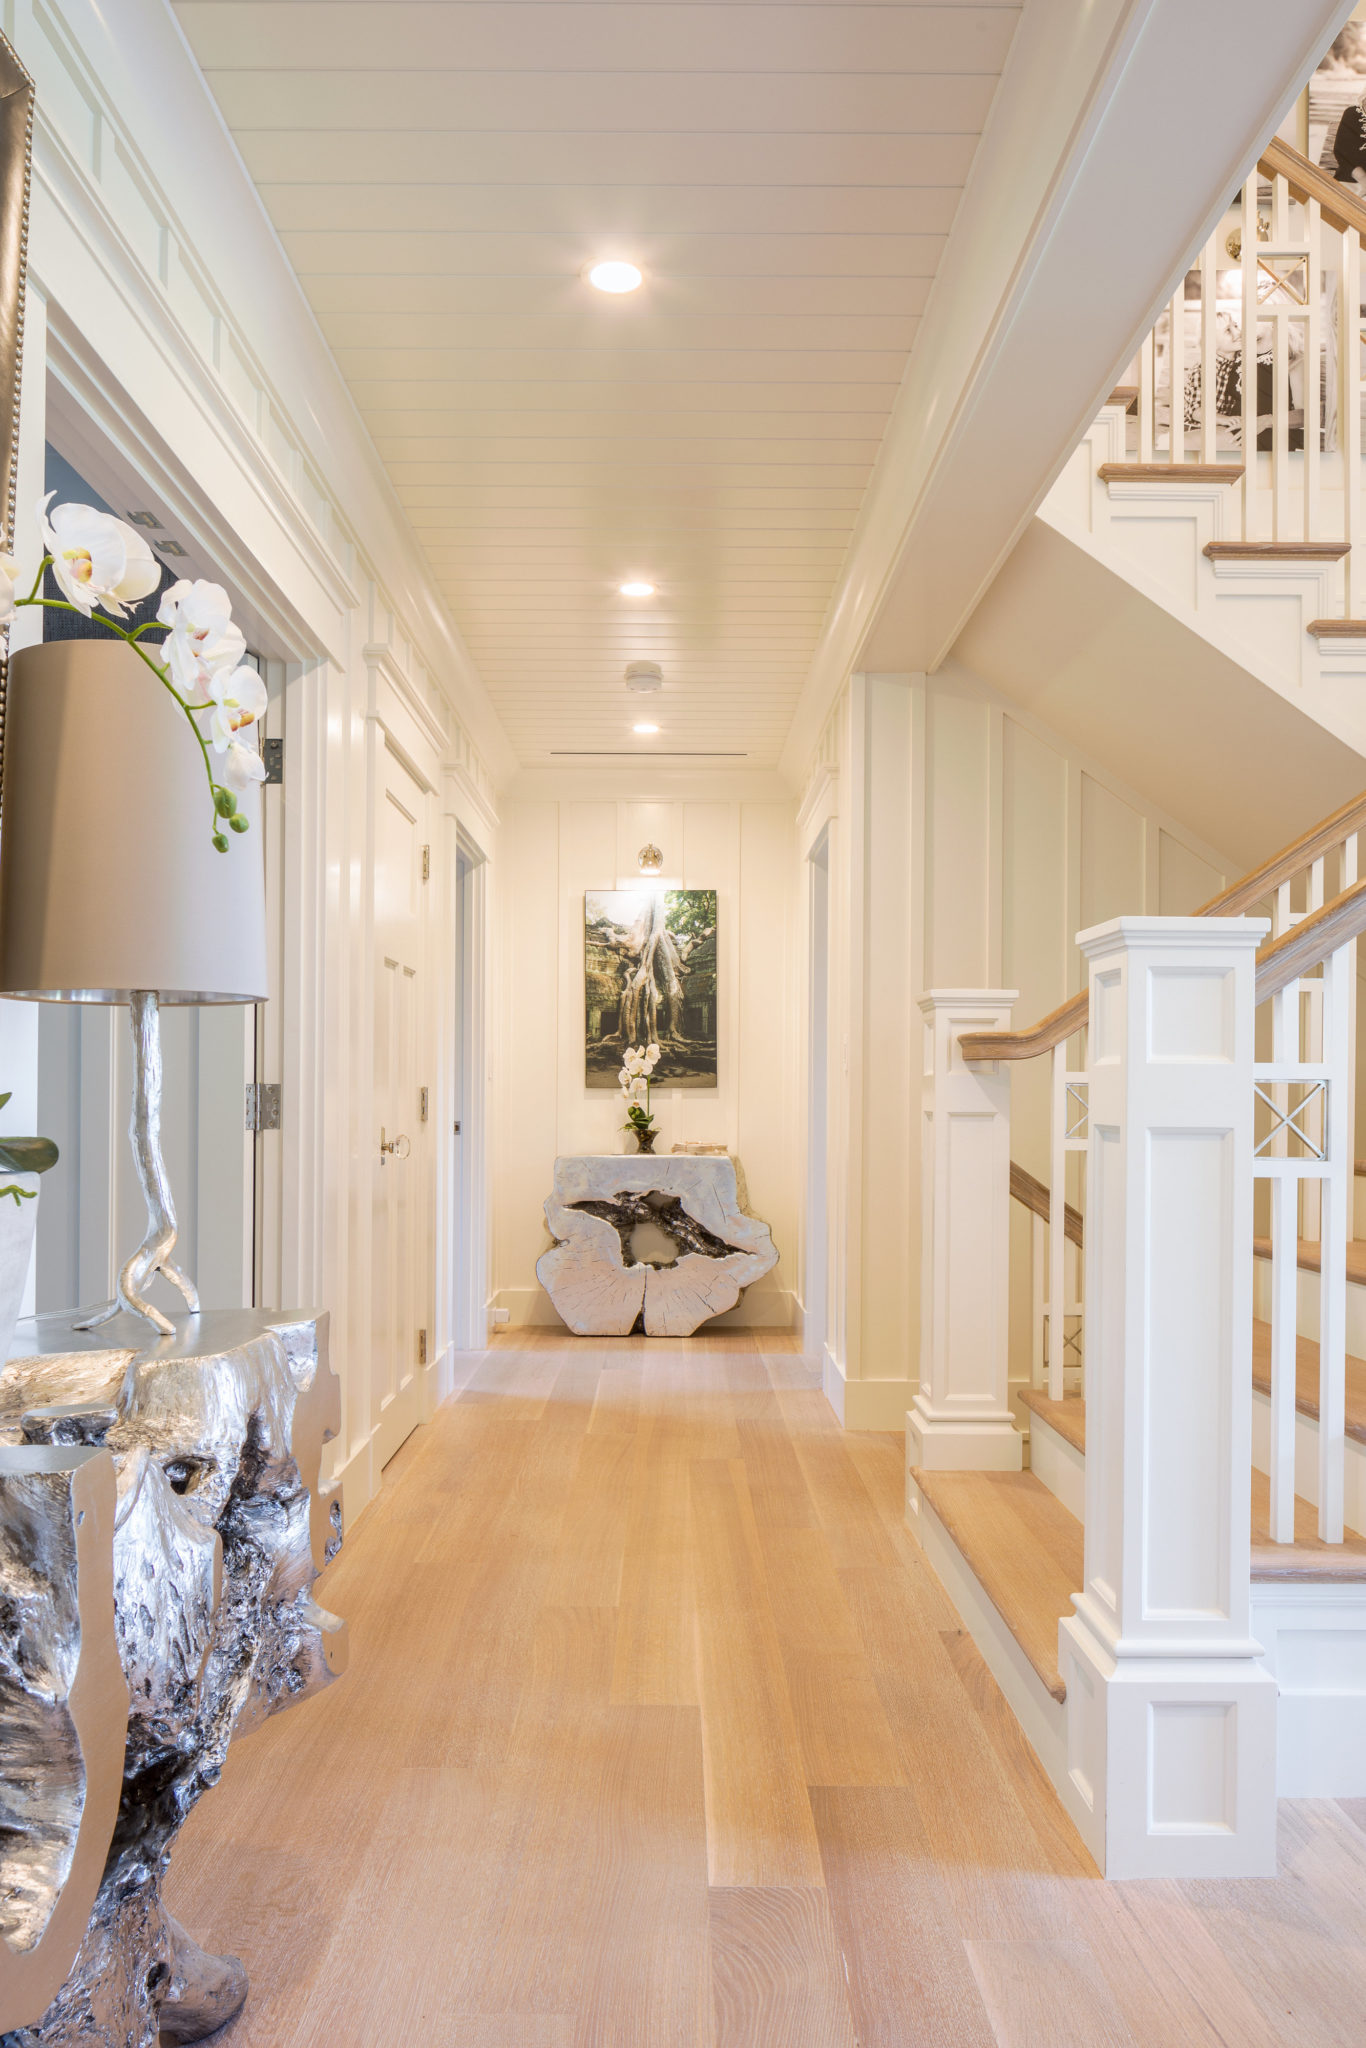 Annapolis. MD Residence - Architectural Design Studios 4